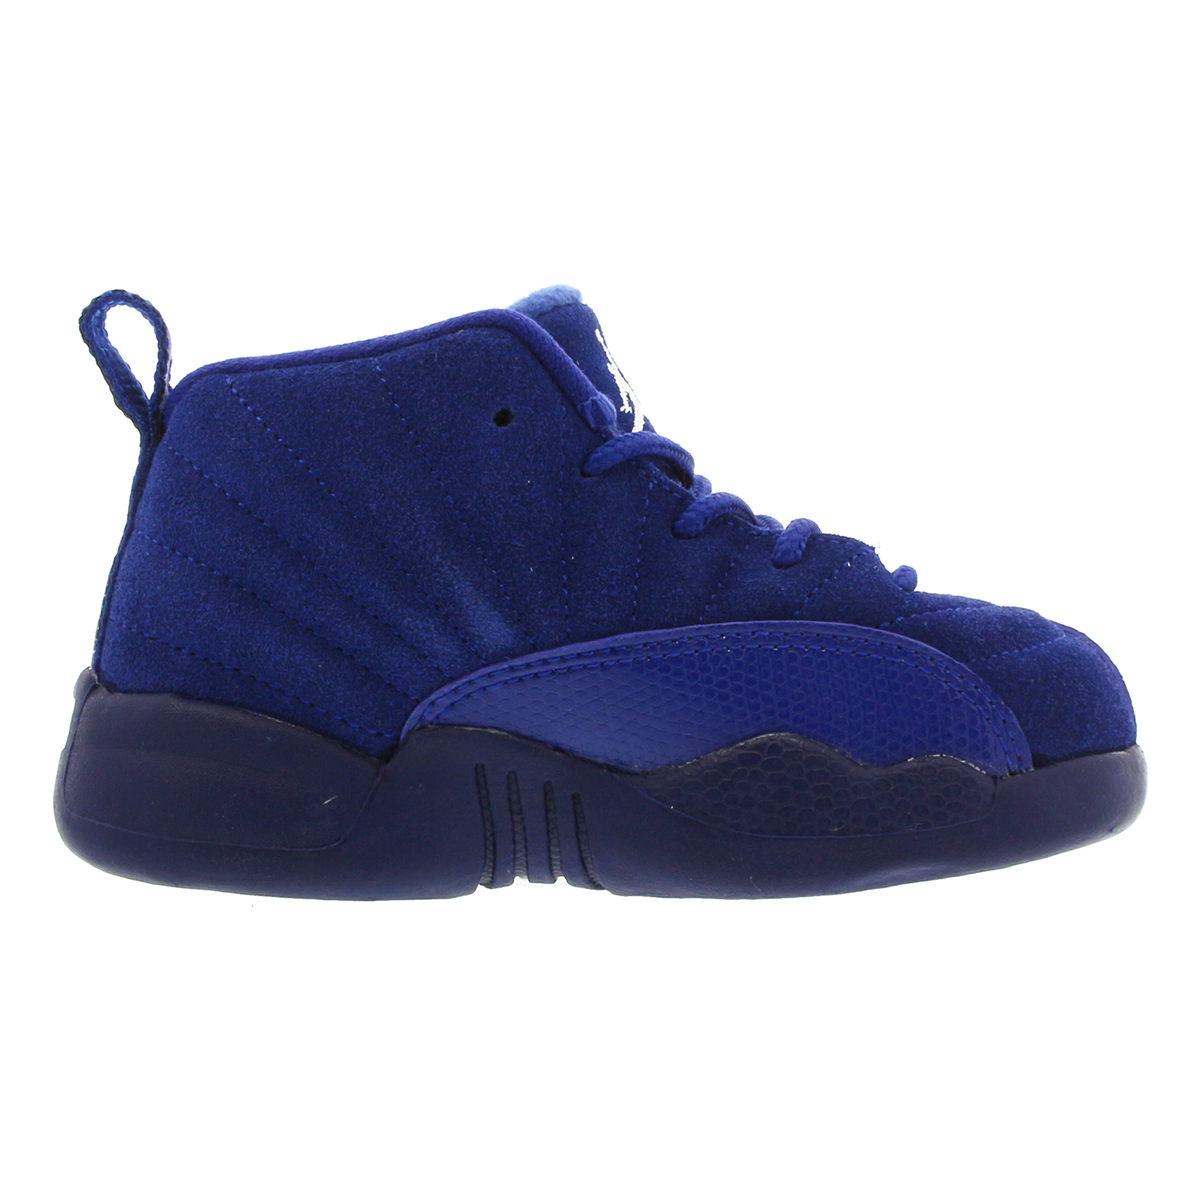 db9abbf4fc9 ... czech nike air jordan 12 retro td nike air jordan 12 nostalgic td deep  royal blue